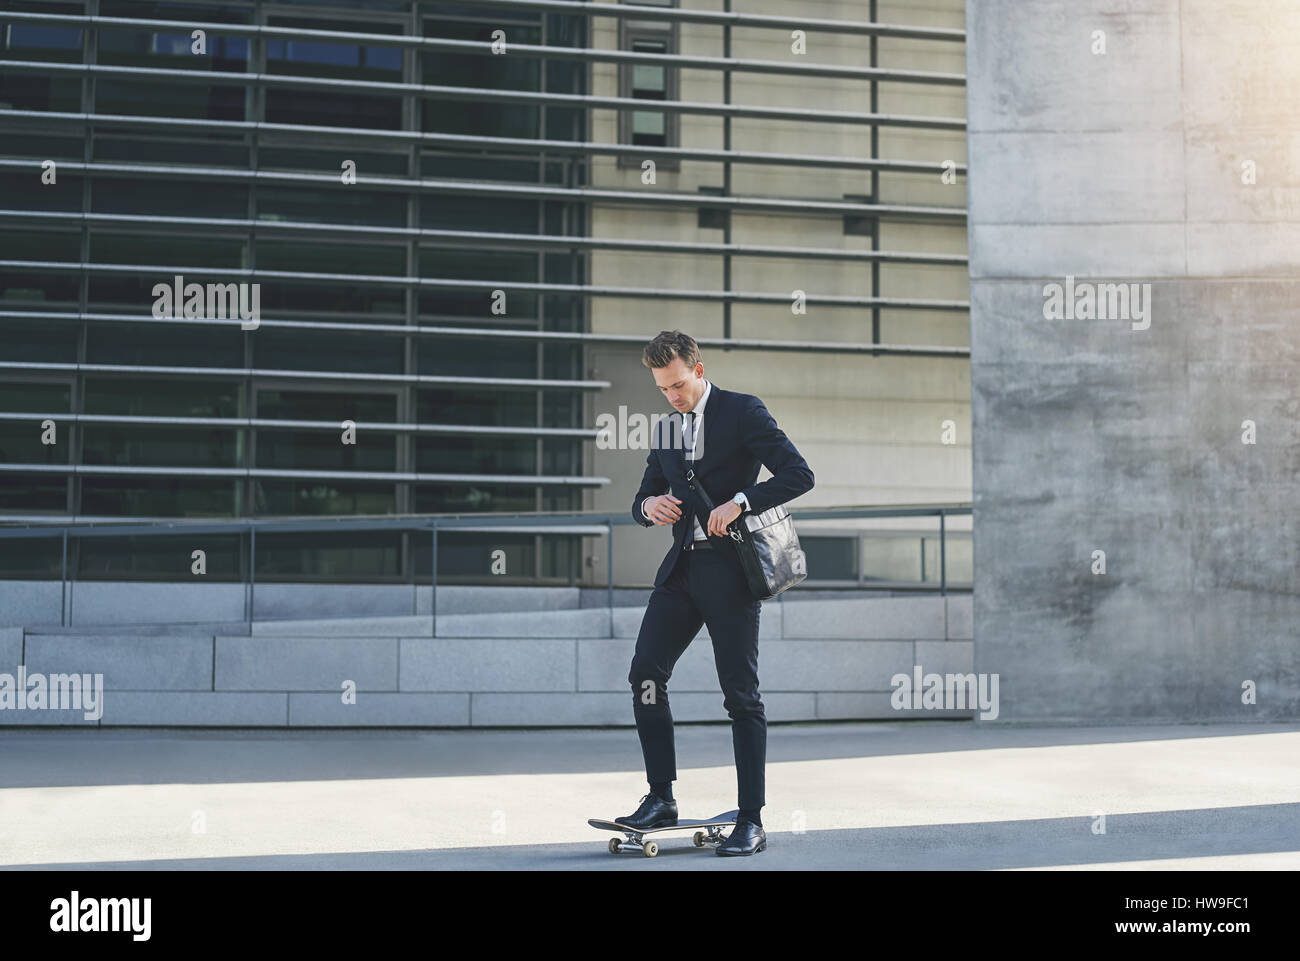 Front view of a businessman adjusting his bag while standing on skateboard - Stock Image